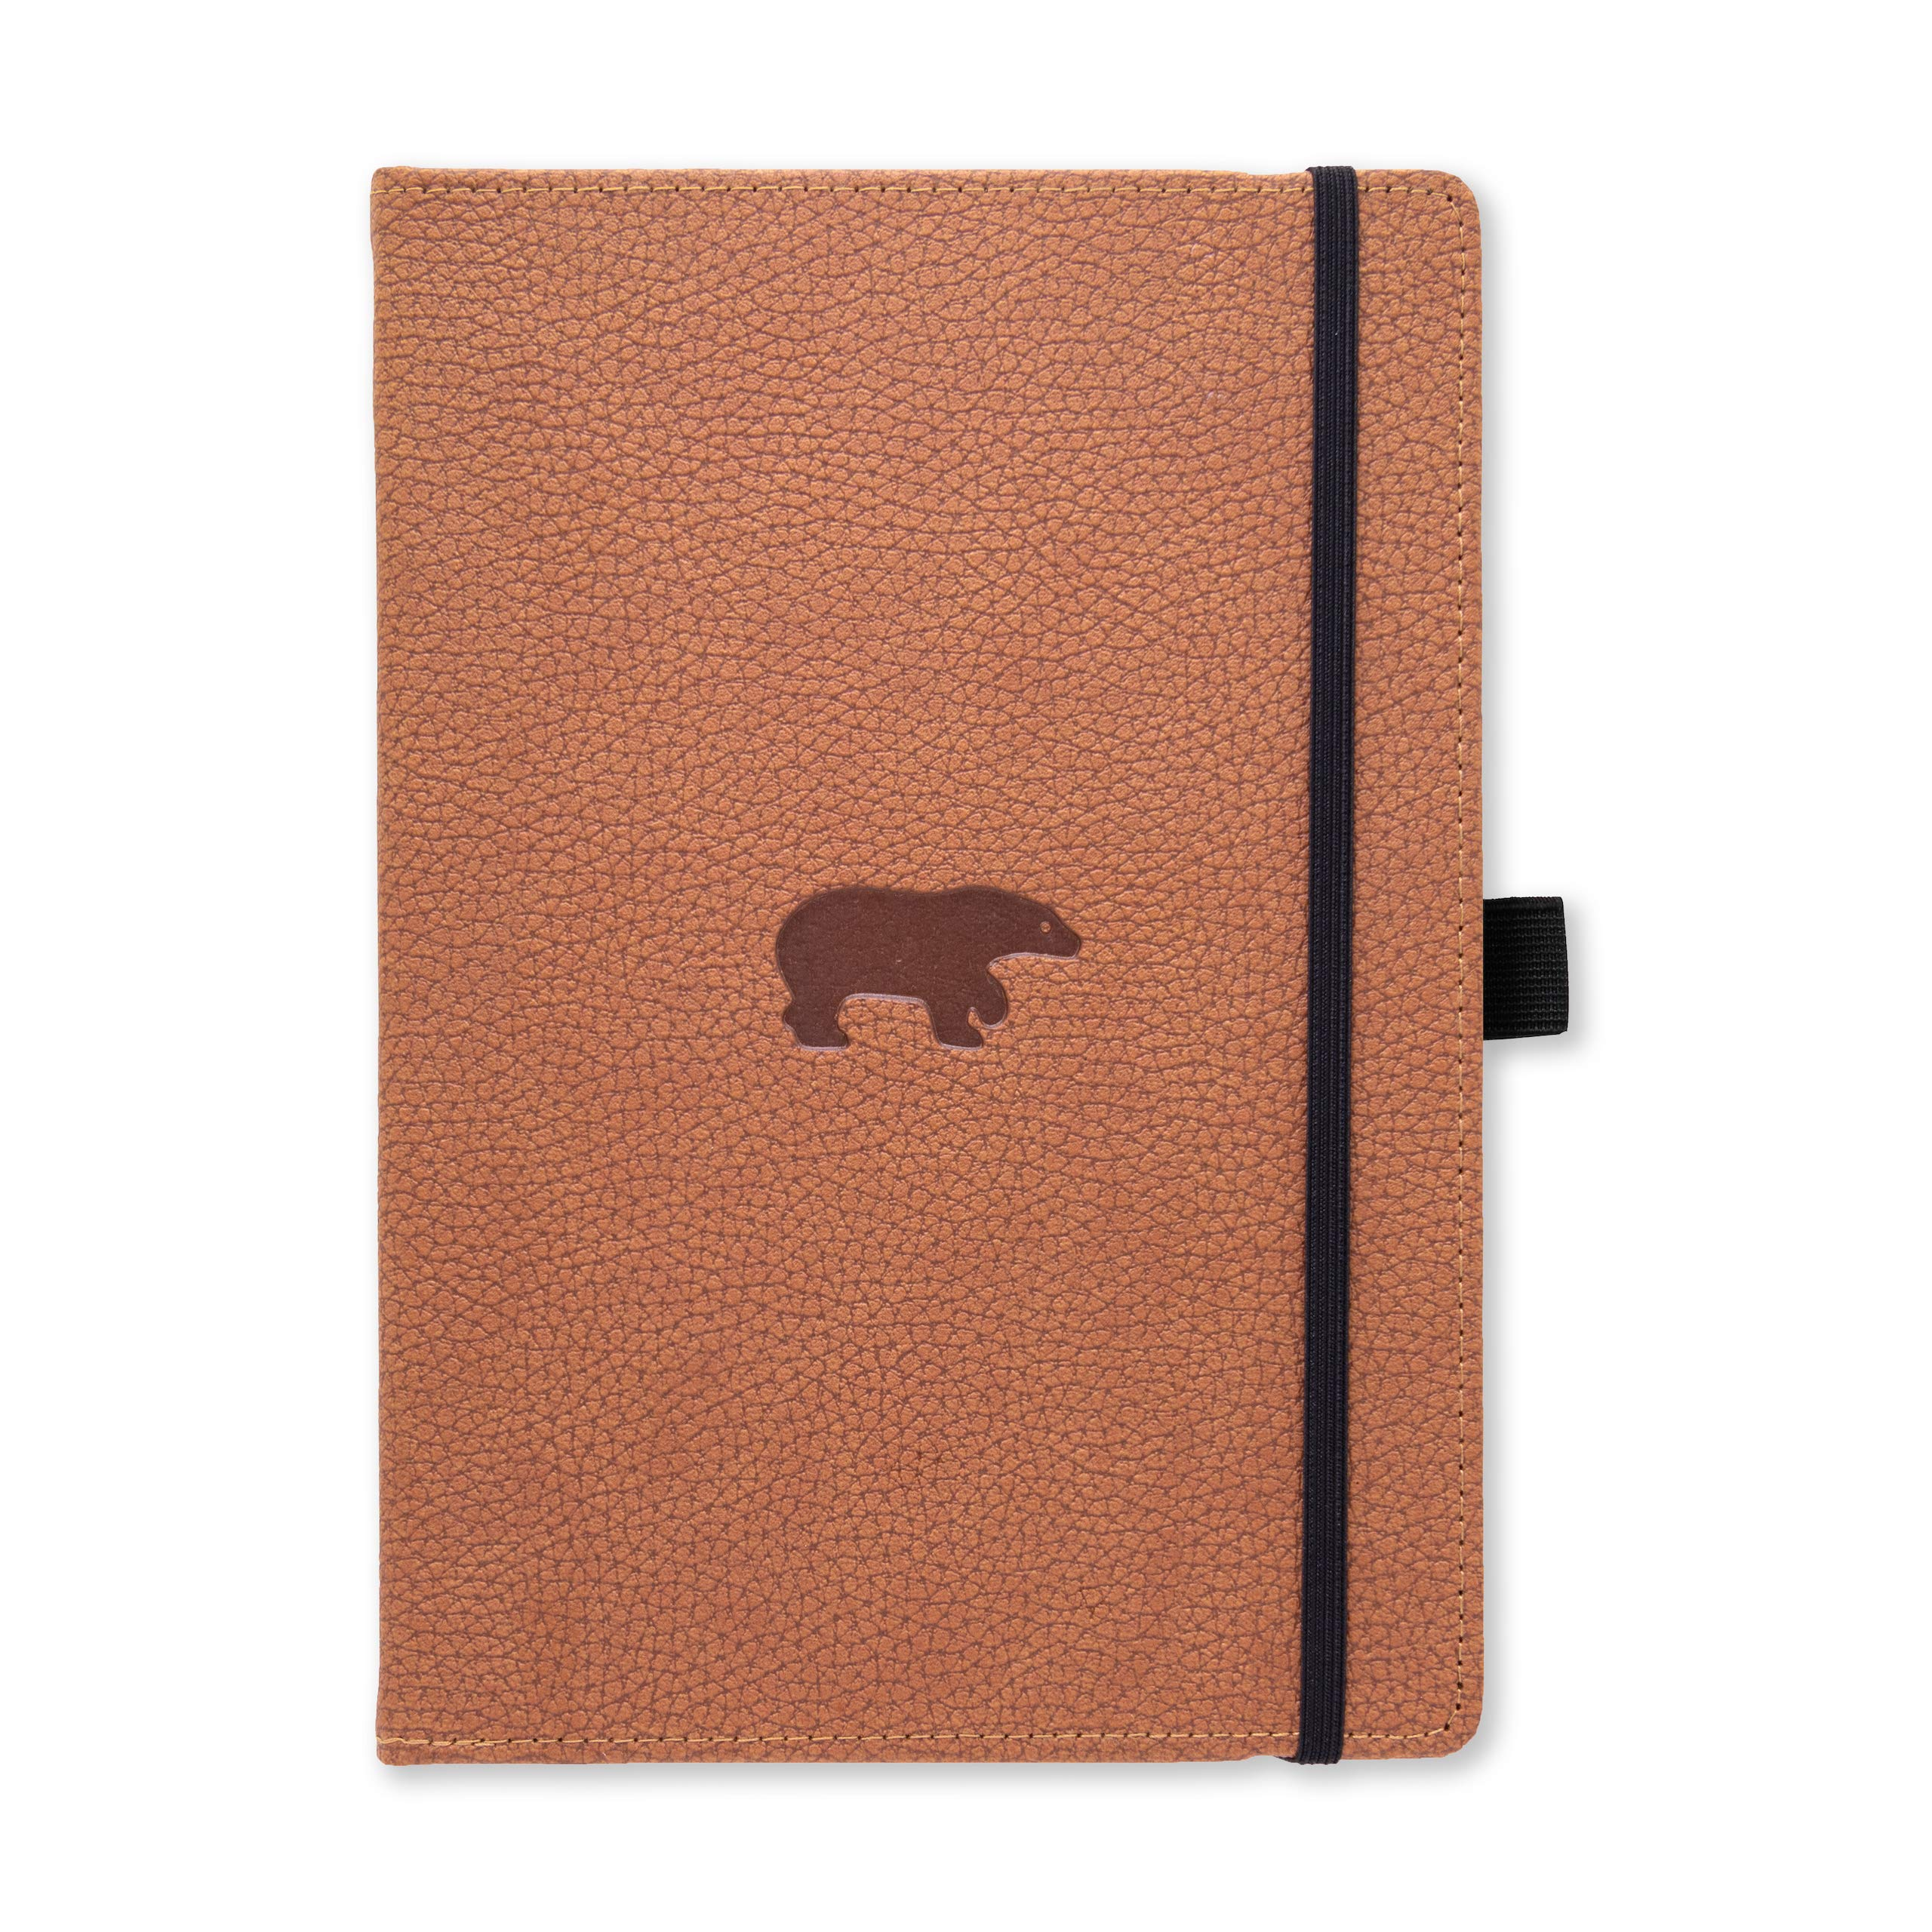 Dingbats Wildlife Dotted Hardcover Notebook - PU Leather, Perforated 100gsm Ink-Proof Paper, Pocket, Elastic Closure, Pen Holder, Bookmark (Brown Bear, Medium A5+ (6.3 x 8.5))